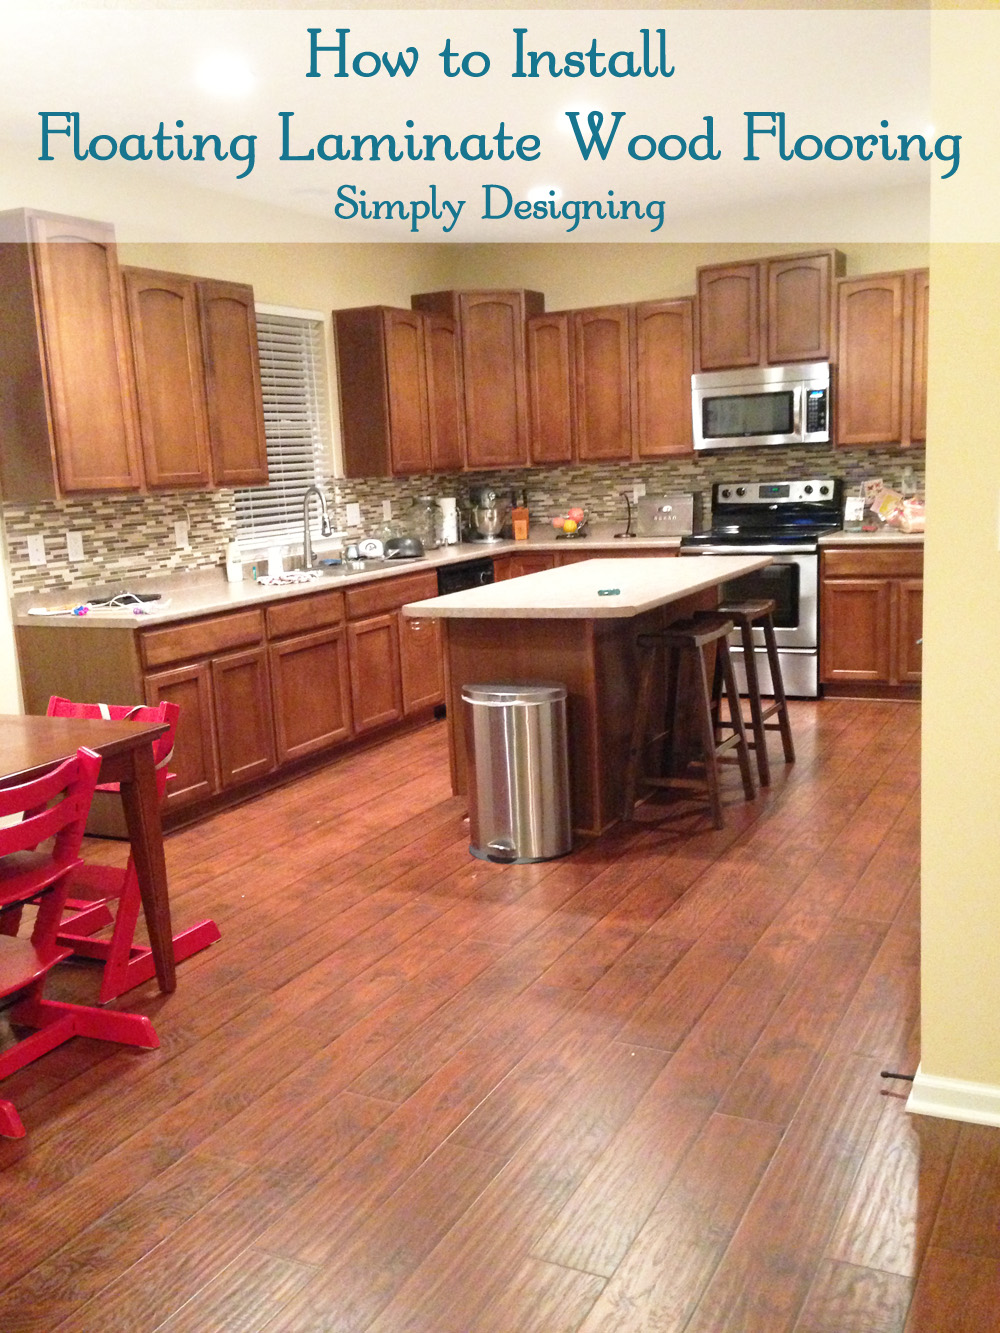 How To Install Floating Laminate Wood Flooring Diy Homeimprovement Simply